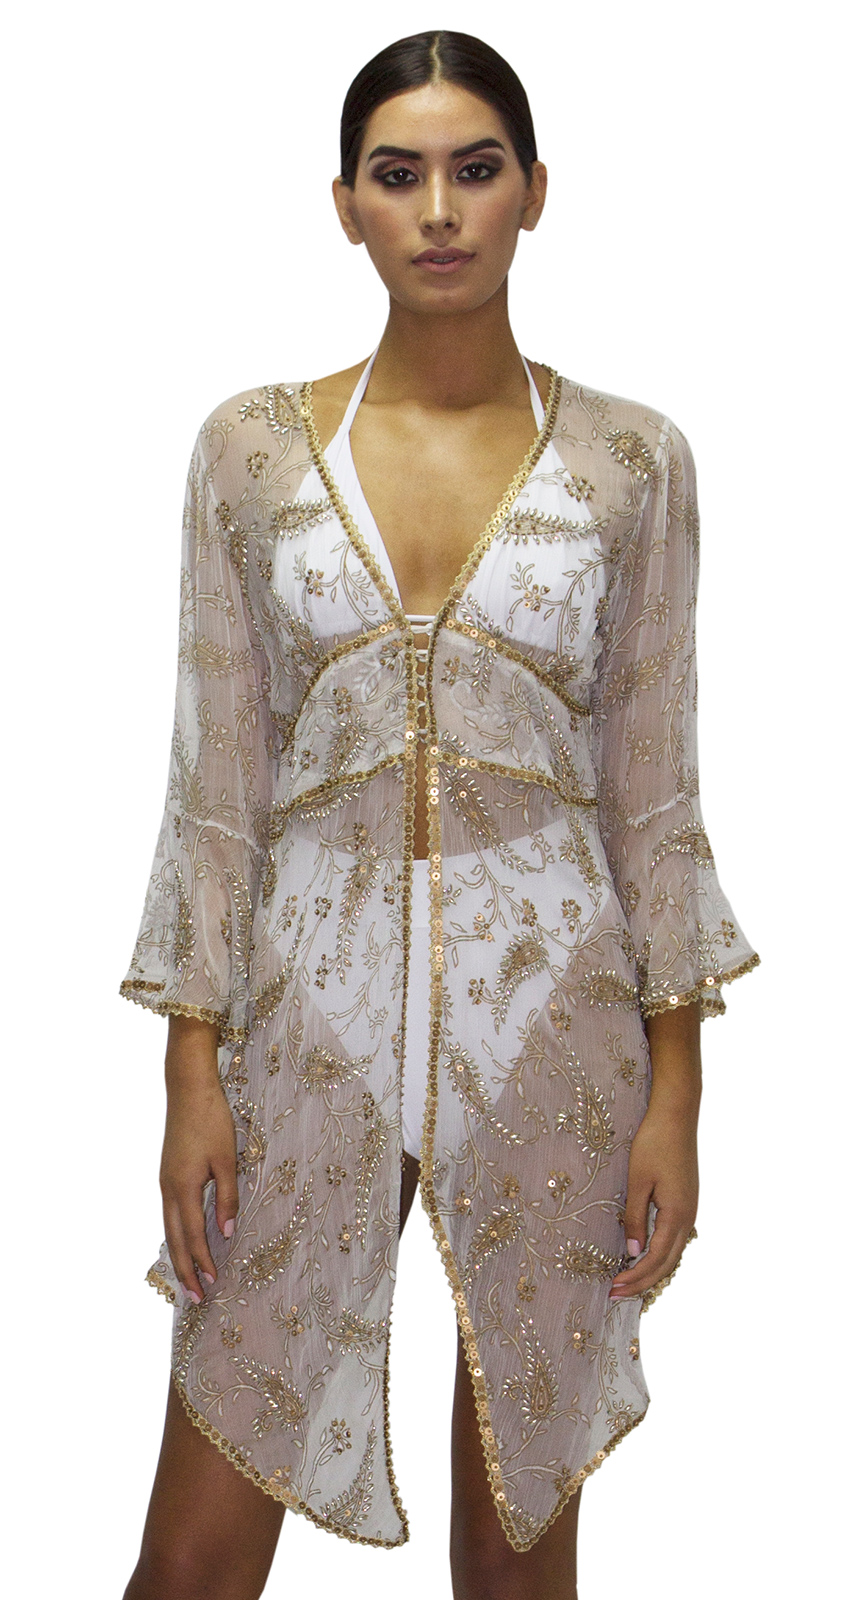 0aad55f541 Luxurious Embroidered Beach Dress With Golden Sequins And Rhinestones -  Cape Virgen Del Sol - Aguaclara